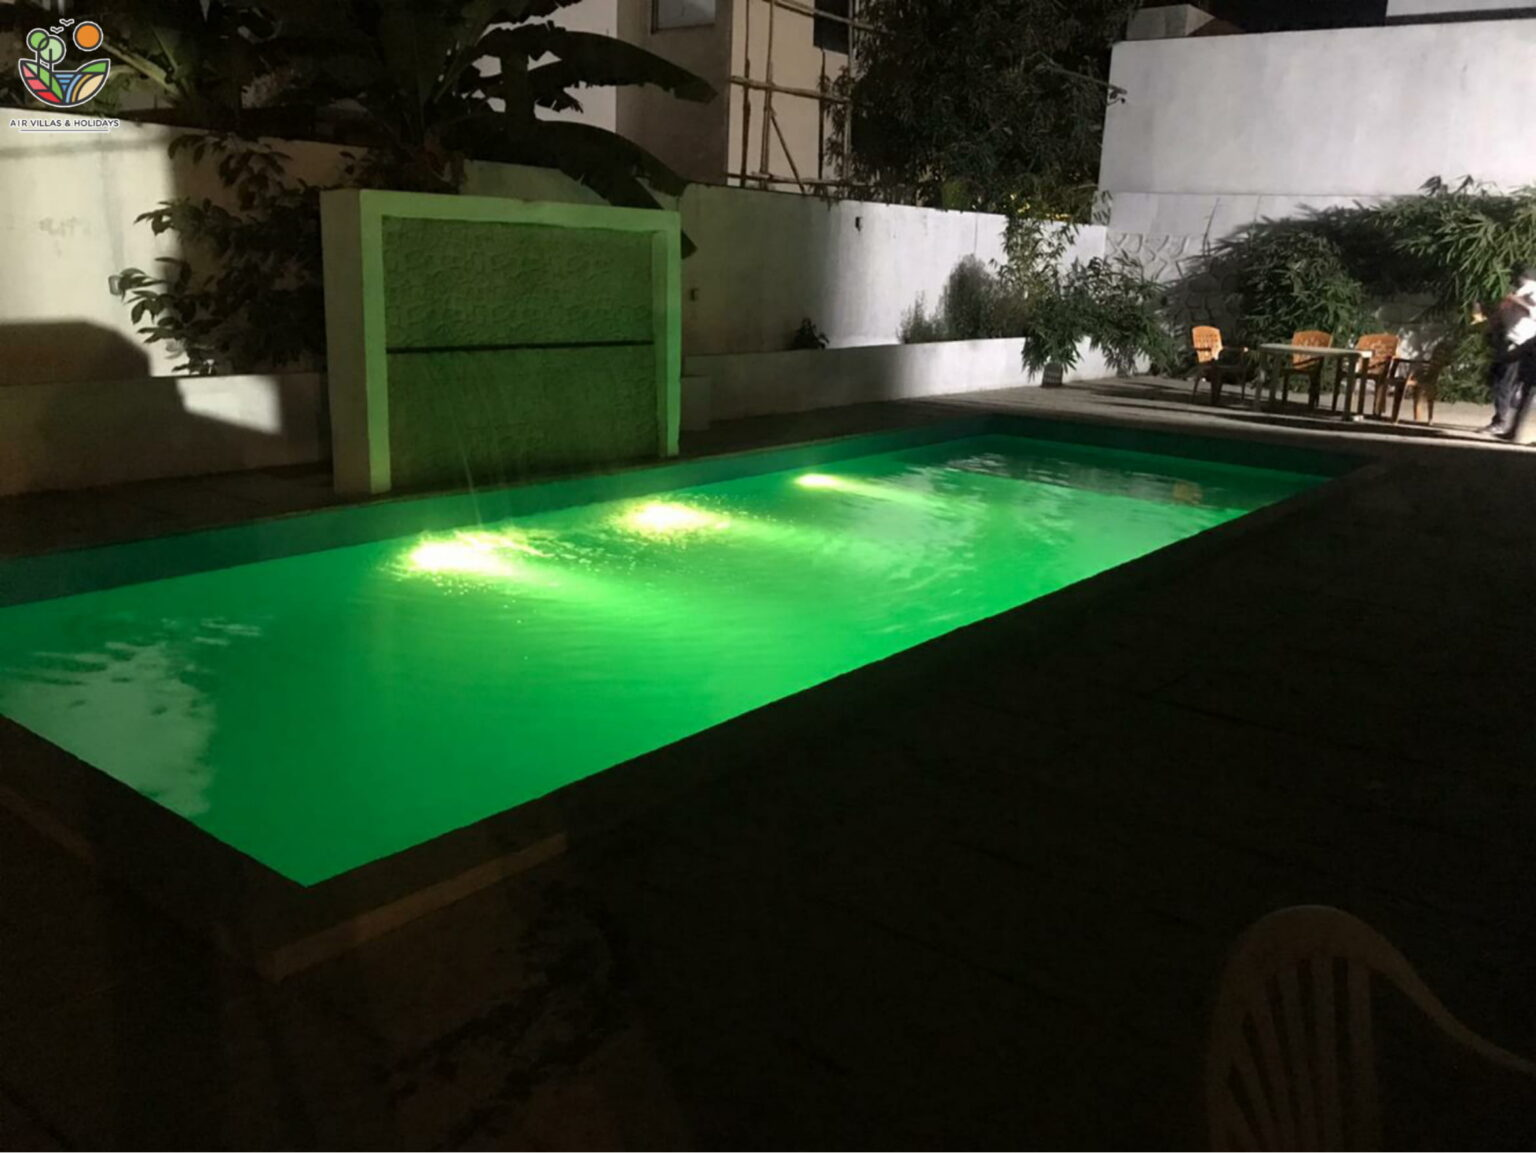 3bhk villas in igatpuri with private swimming pool